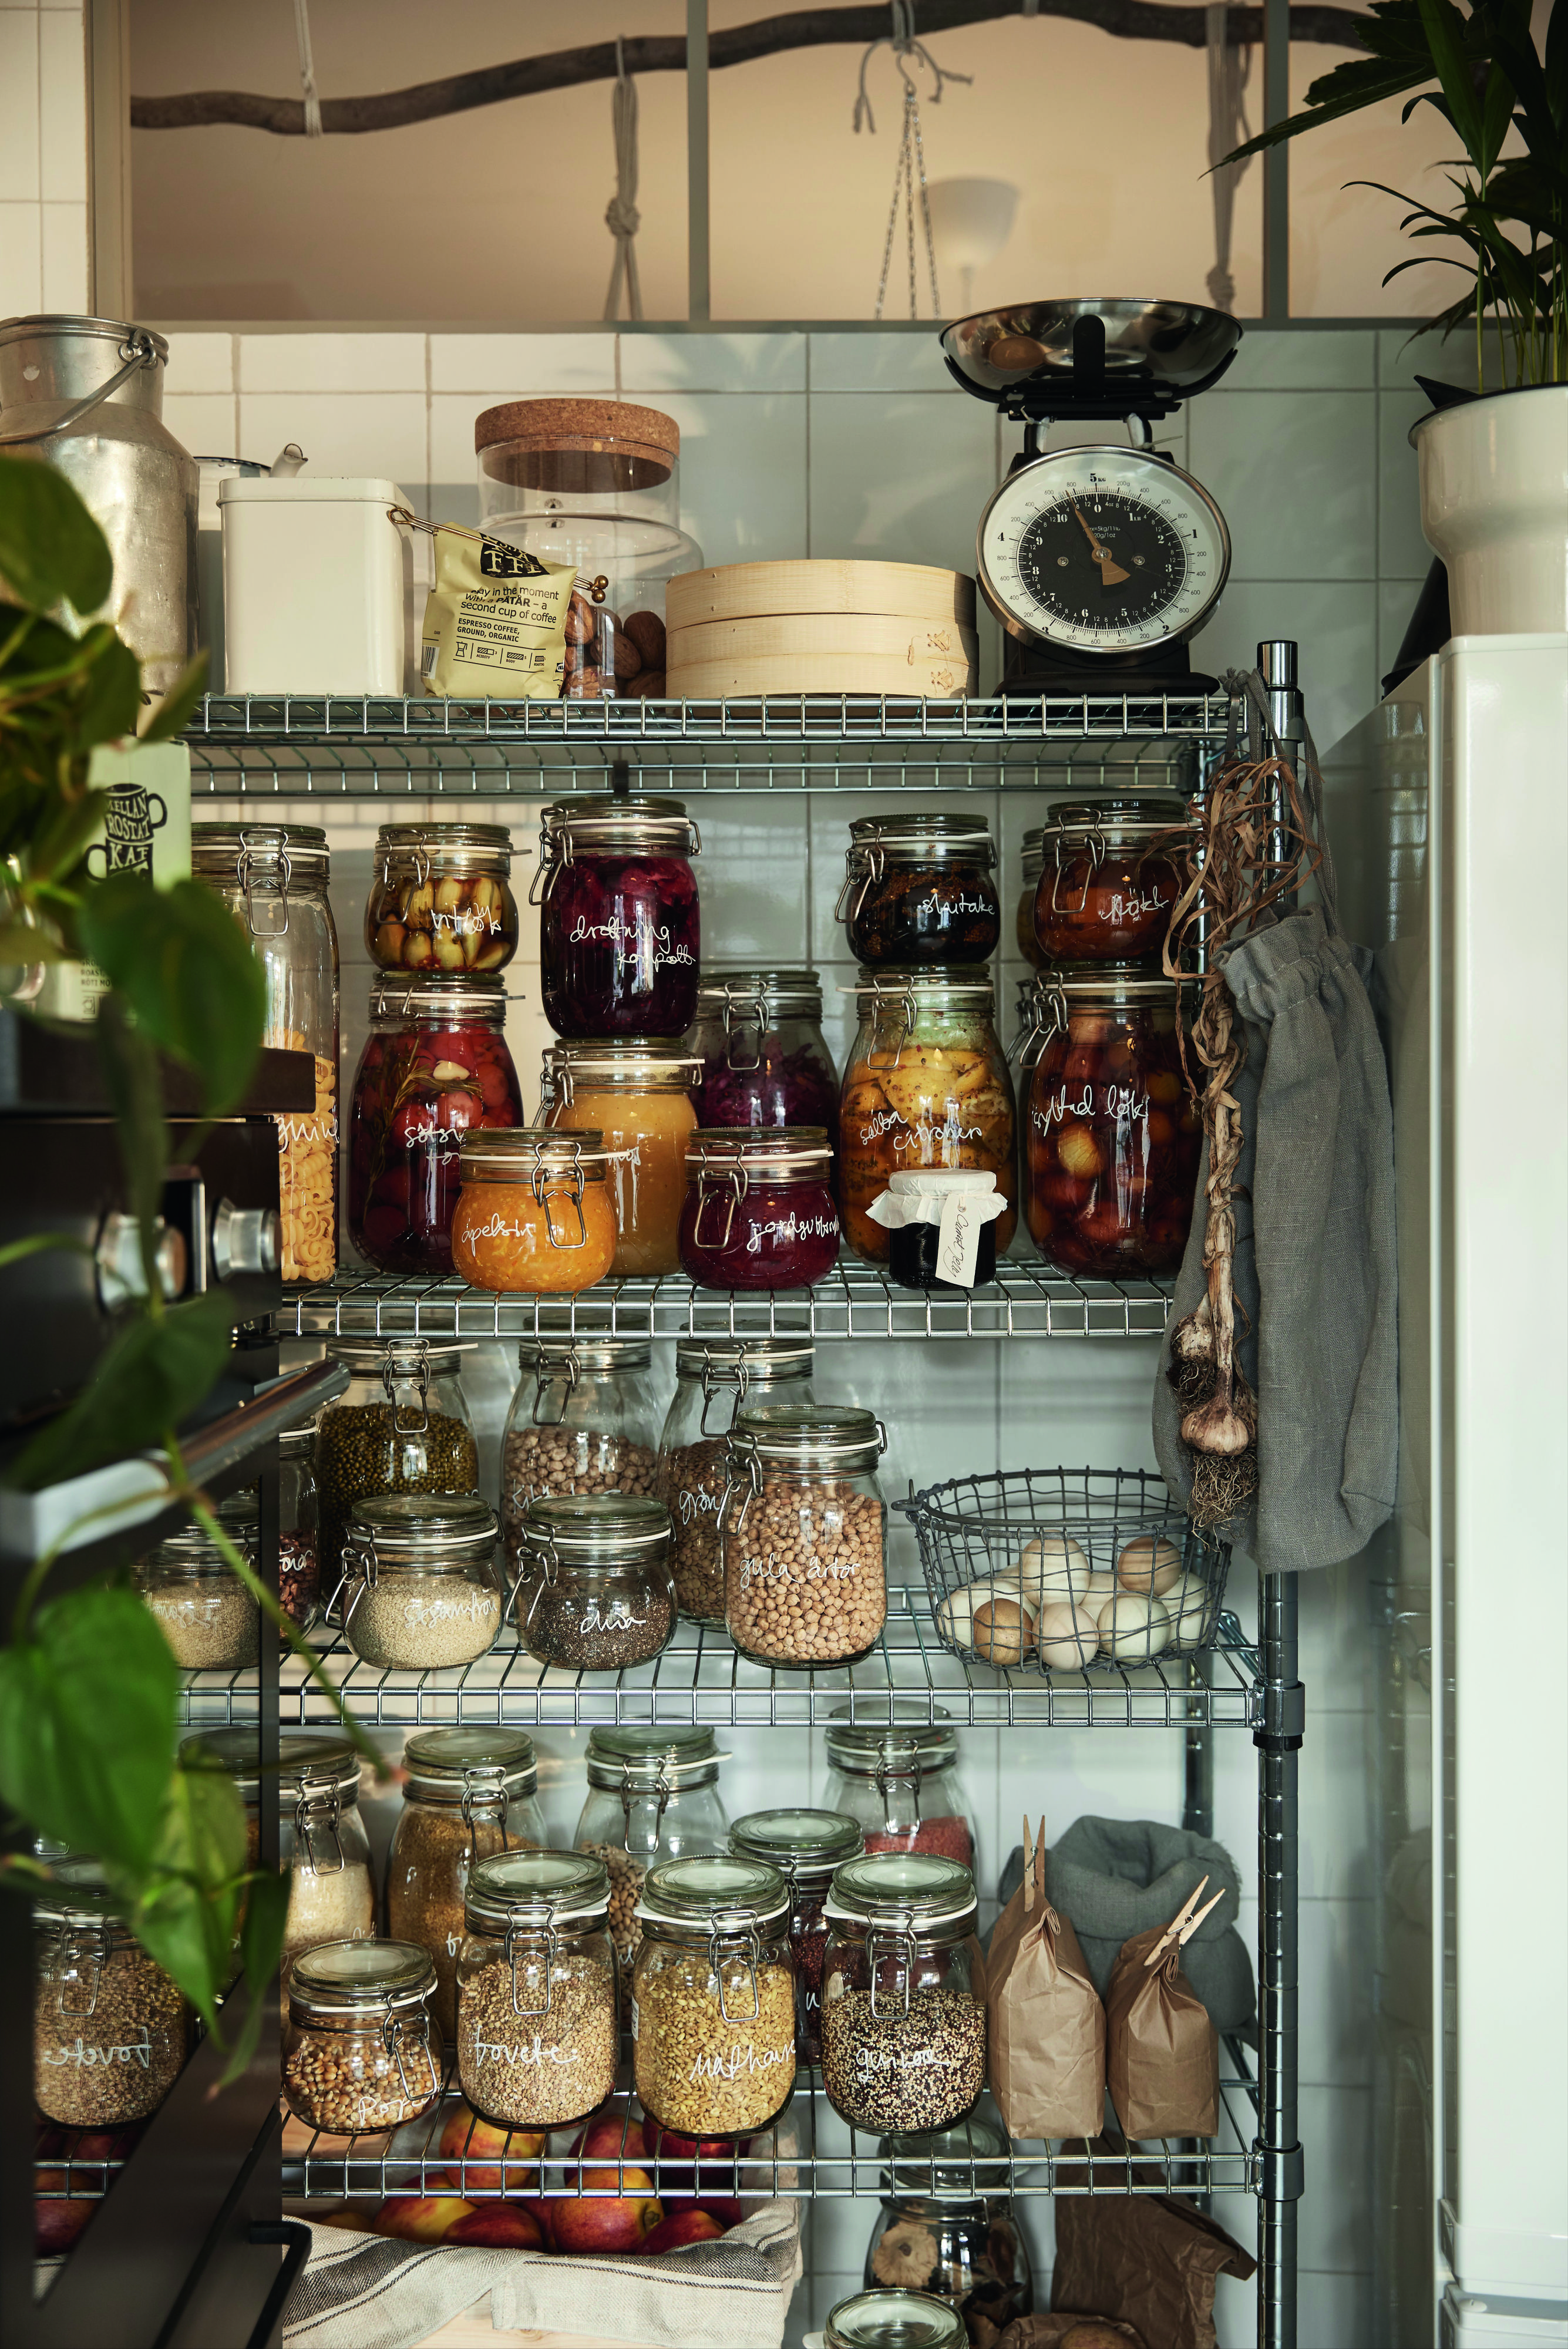 The Korken Jar Puts Your Snacks On Display It S A Beautiful Way To Store Dry Food And You Can Avo Plastic Free Kitchen Kitchen Inspirations Zero Waste Living